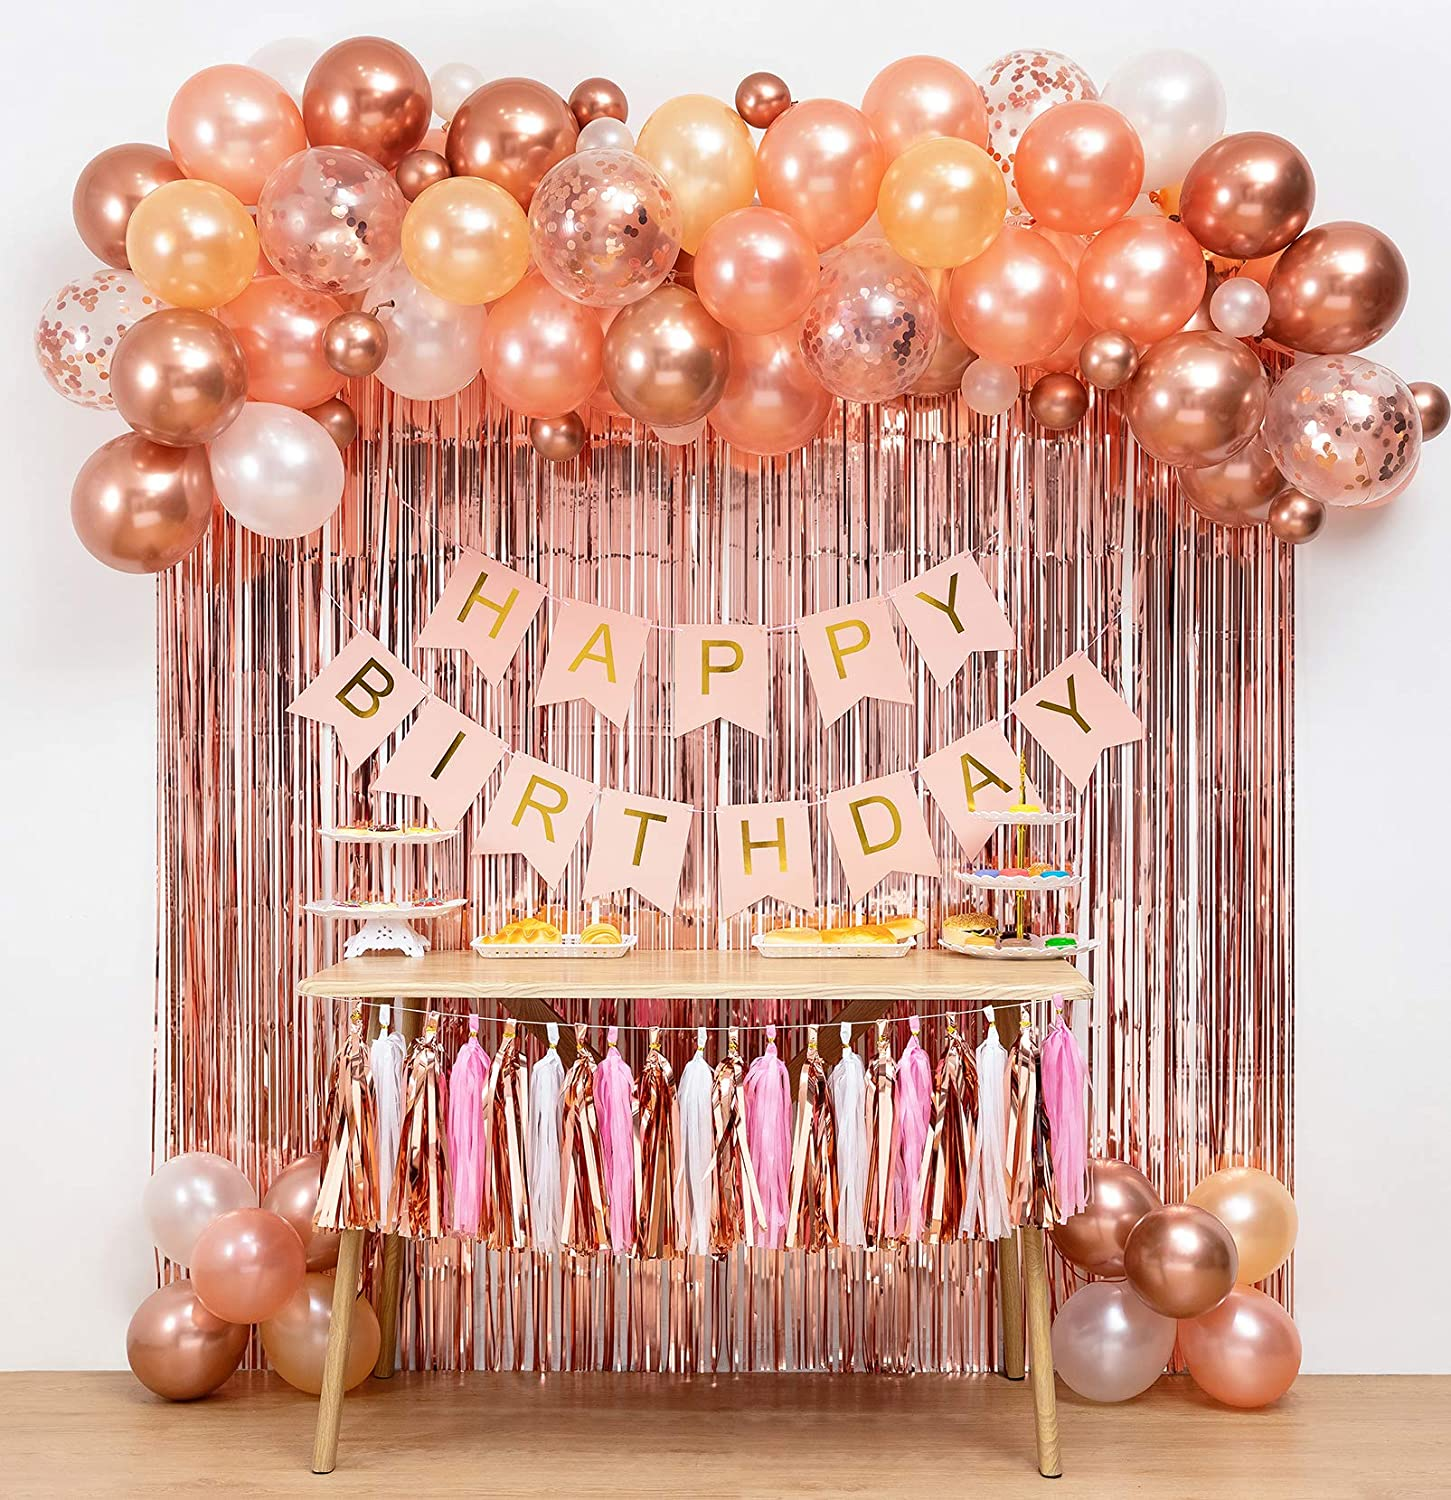 Rose Gold Birthday Party Decorations&Balloons Arch Garland(Rose Gold),Pink Happy Birthday Banner,Fringe Curtain 2pcs,Paper Tassel,Balloon Decoration Tools,Confetti Balloons,for Girl Party Photo Props